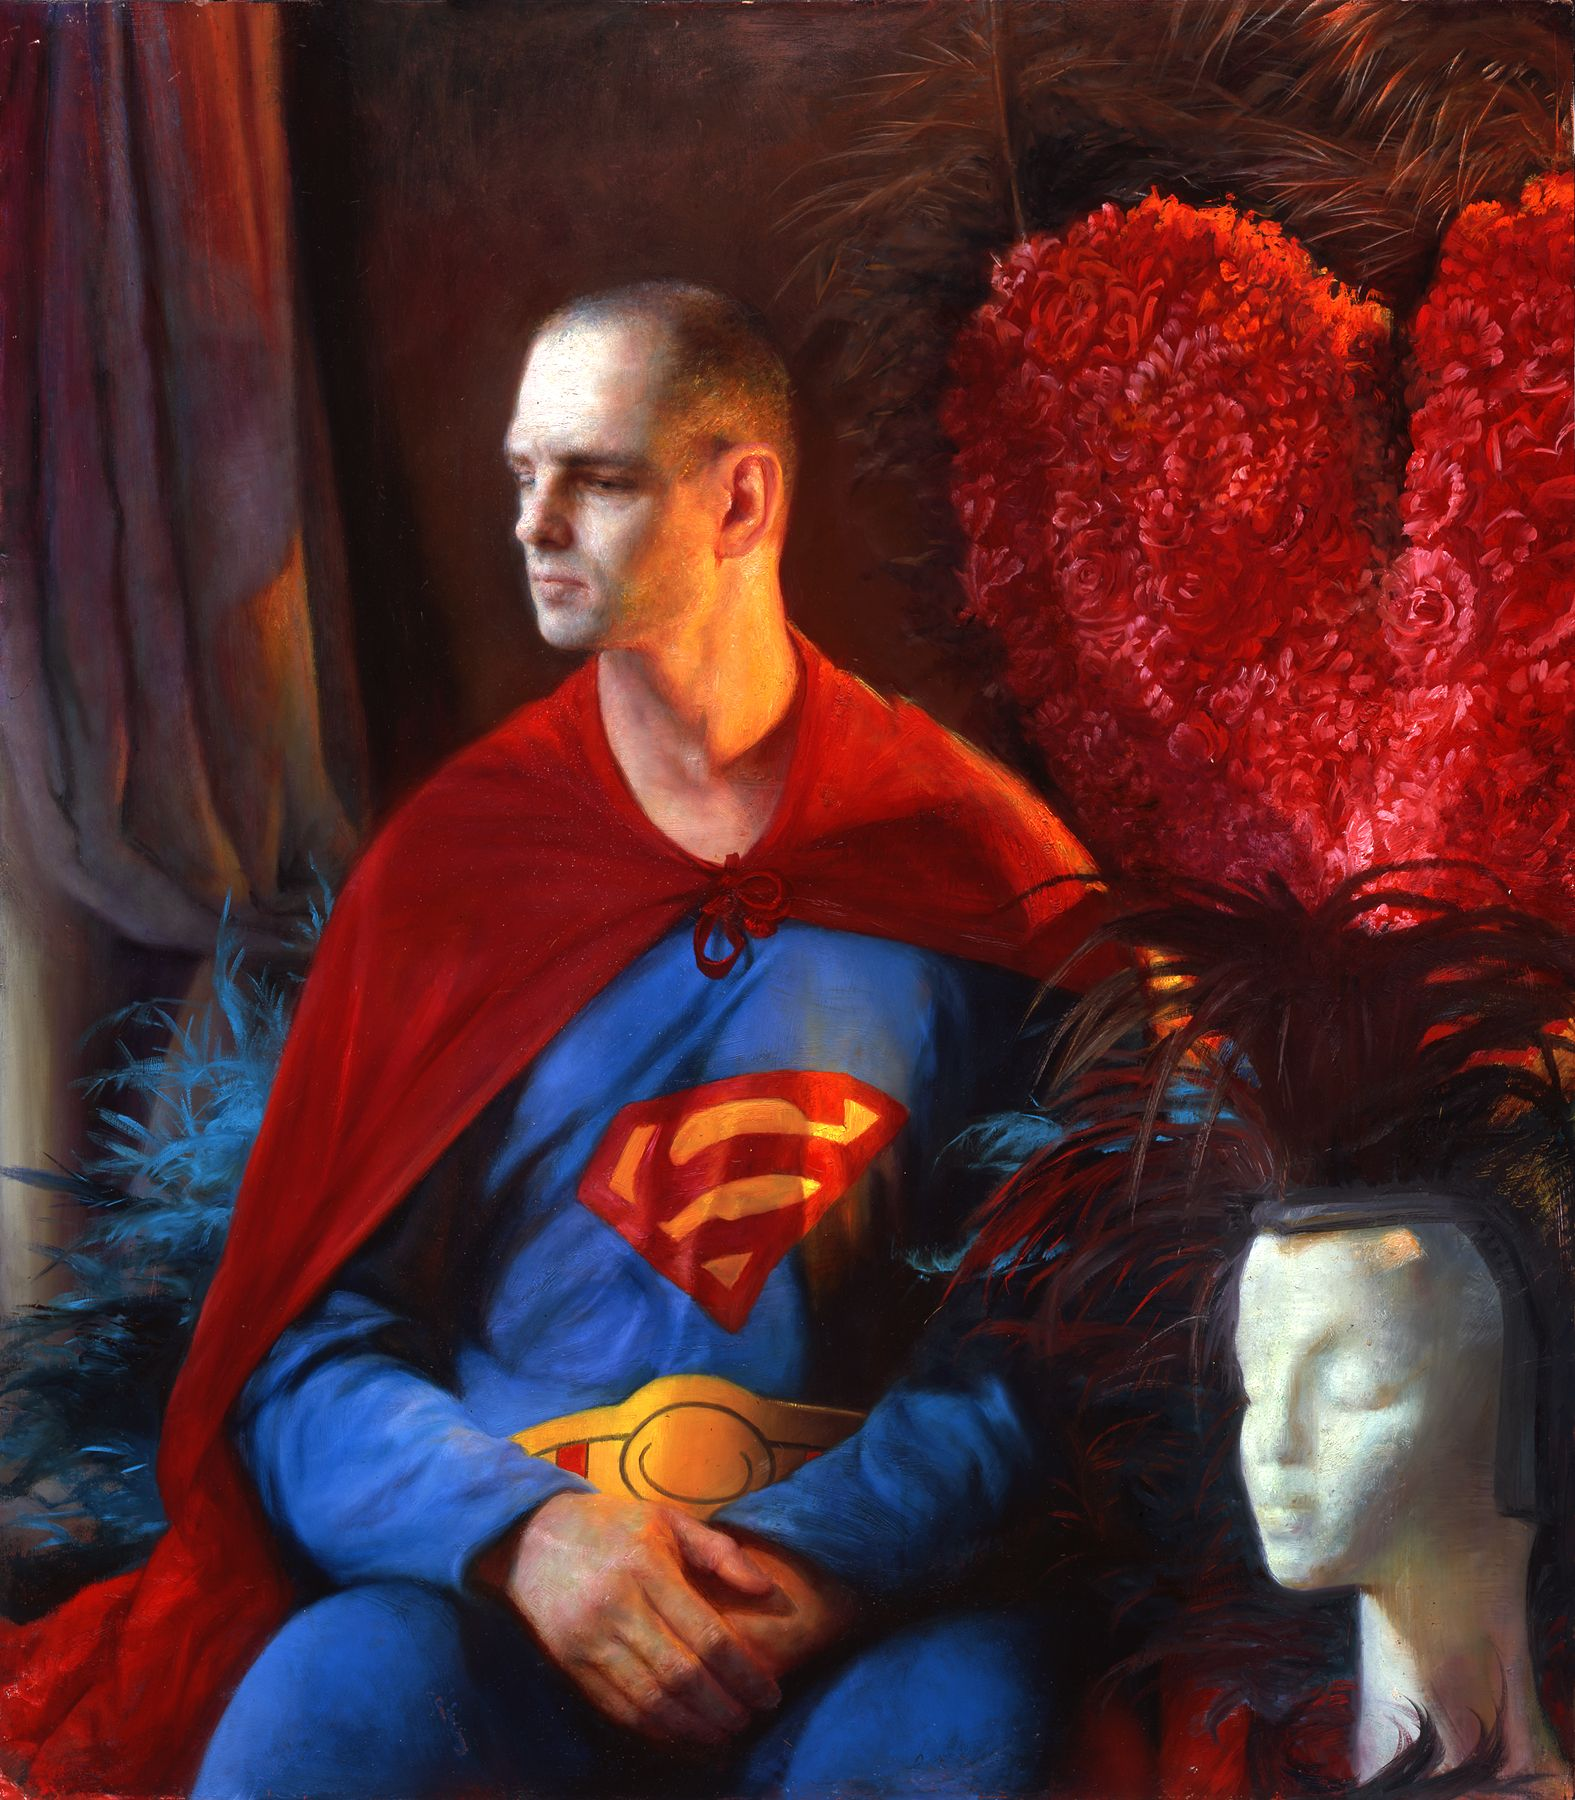 Steven Assael, Untitled (Superman) (SOLD), 2006, oil on canvas, 40 x 30 inches